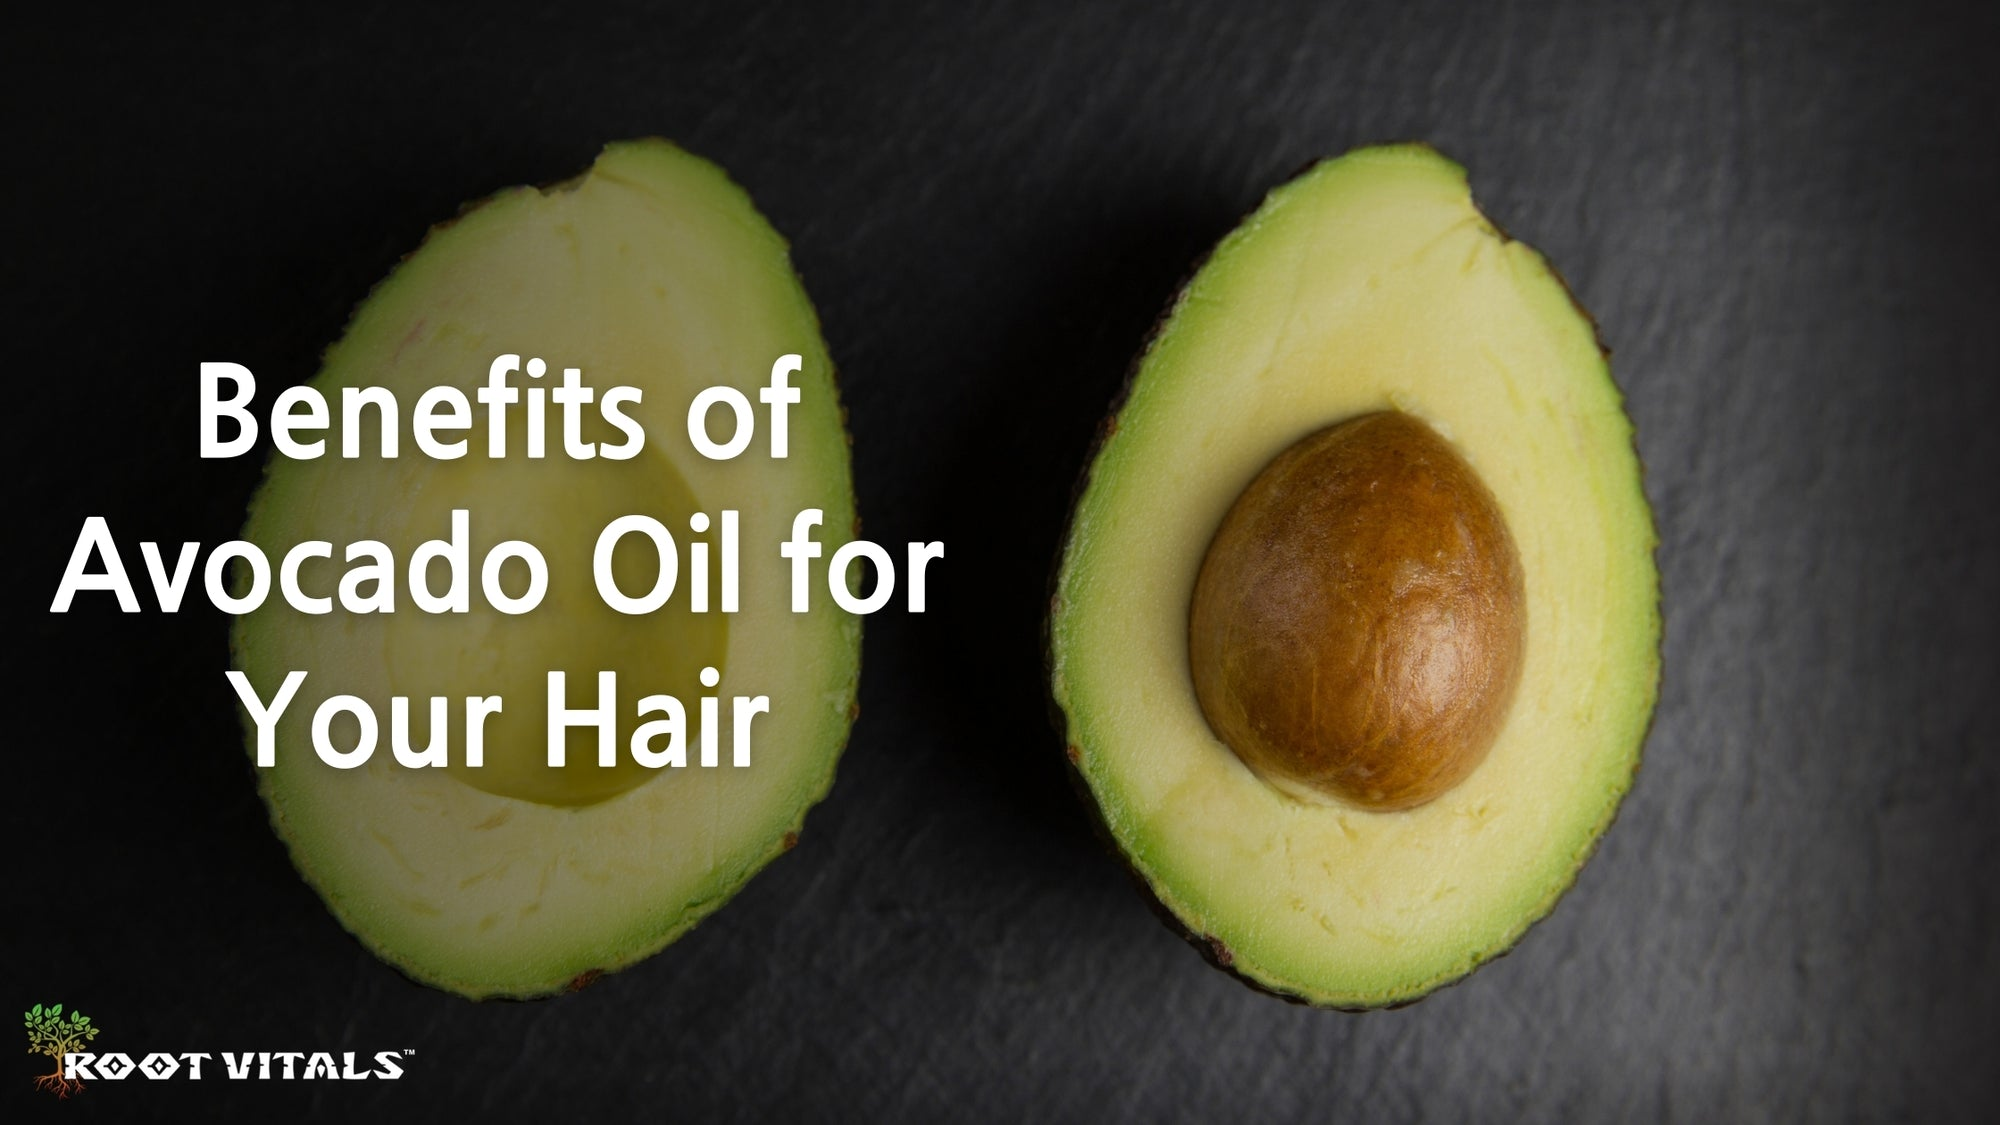 Important Benefits of Avocado Oil for Hair used as all natural hair products